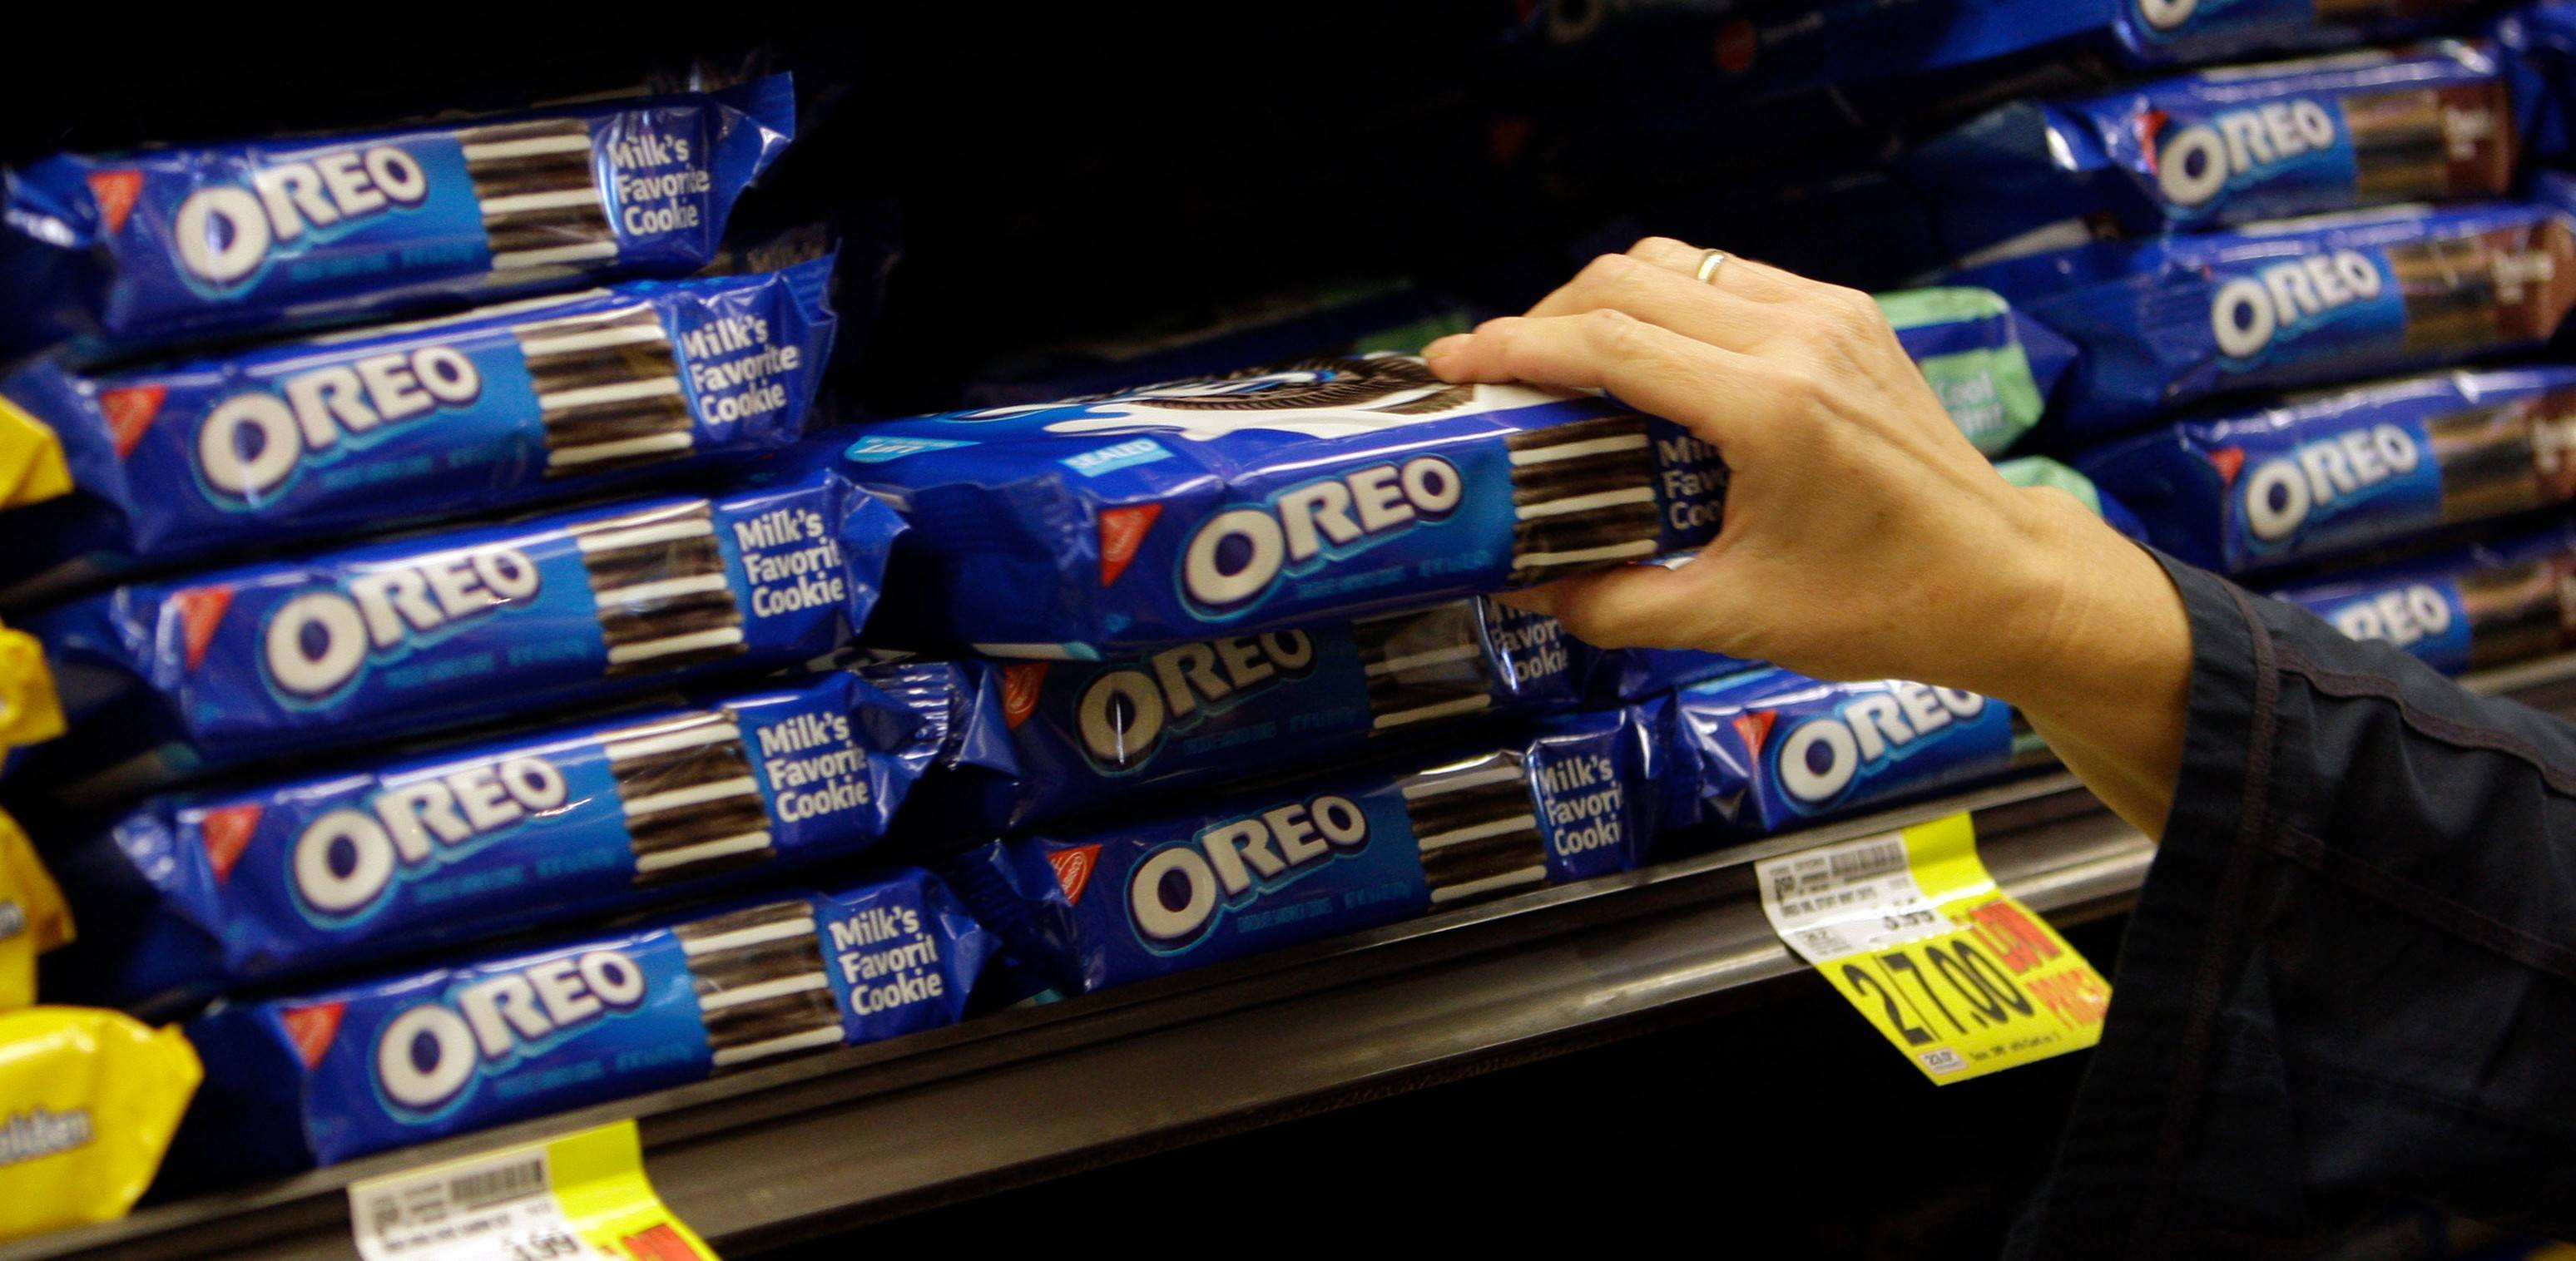 Deerfield-based Mondelez International, the global snack giant whose brands include Oreo cookies, posted second-quarter earnings that beat estimates after cost cuts helped offset sluggish sales.